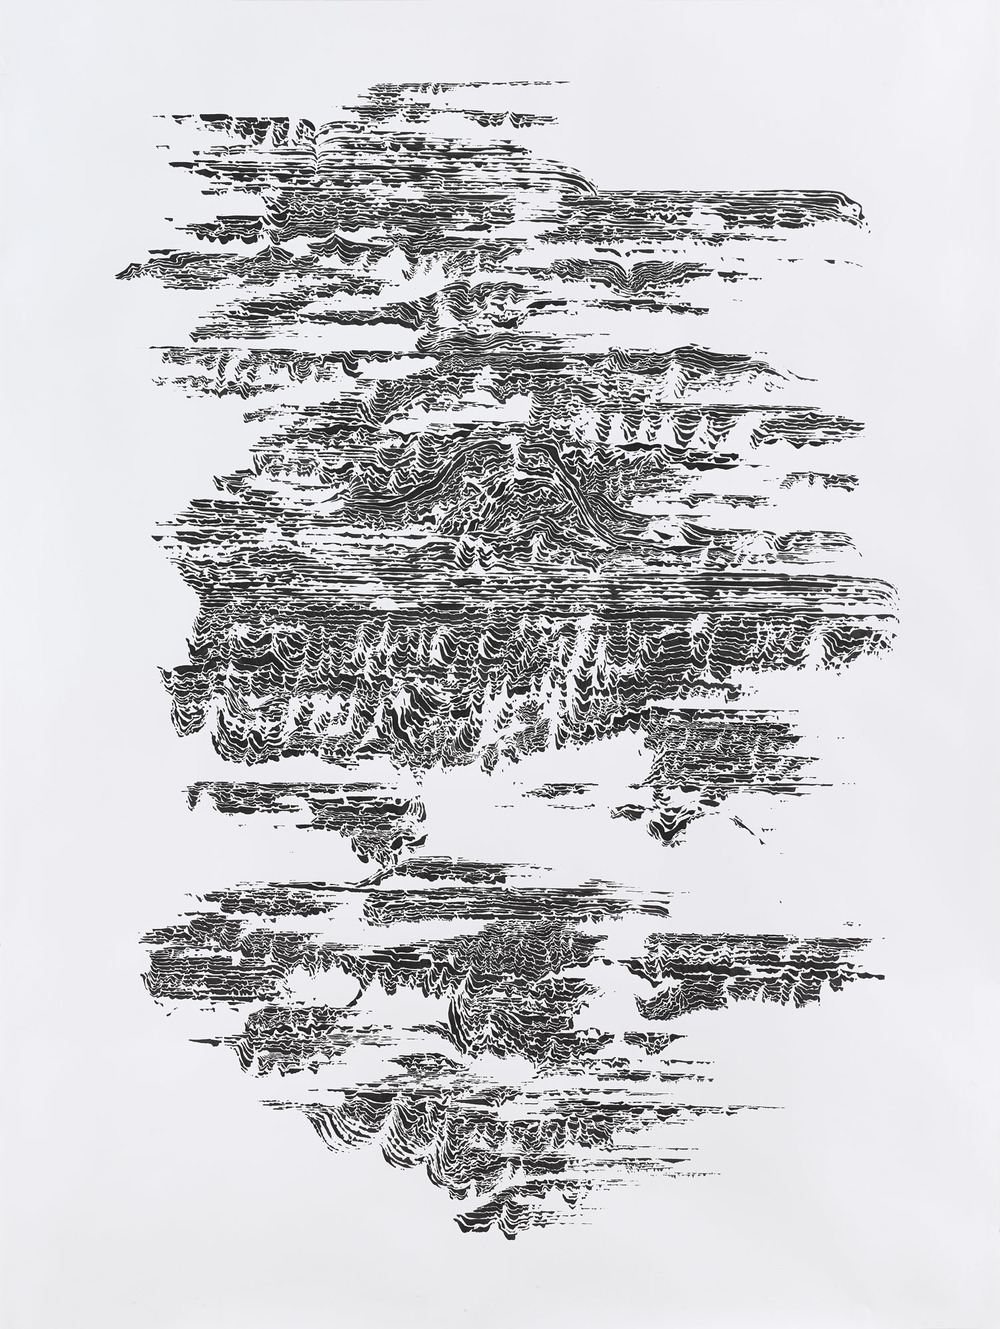 B_K_P_7440_untitled_ink_on_paper_200x150cm_2015